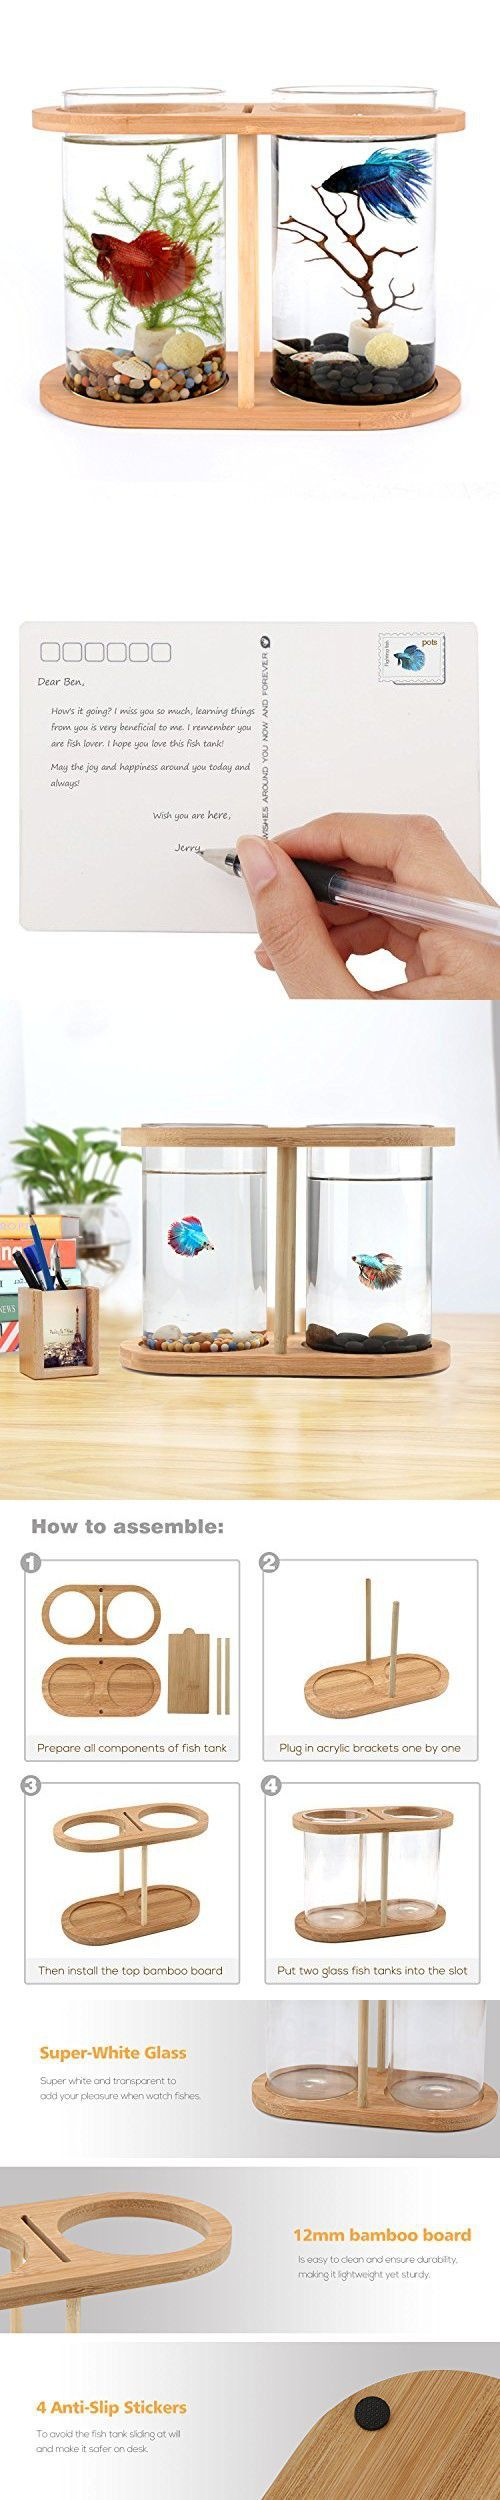 Segarty Cool Design Desktop Glass Fish Tank | Small Fish Bowls with Dual Glass Vase and Bamboo Shelf | 360 Degree View Fish Aquarium Kit For Betta Fish | Livingroom Home Office Decoration